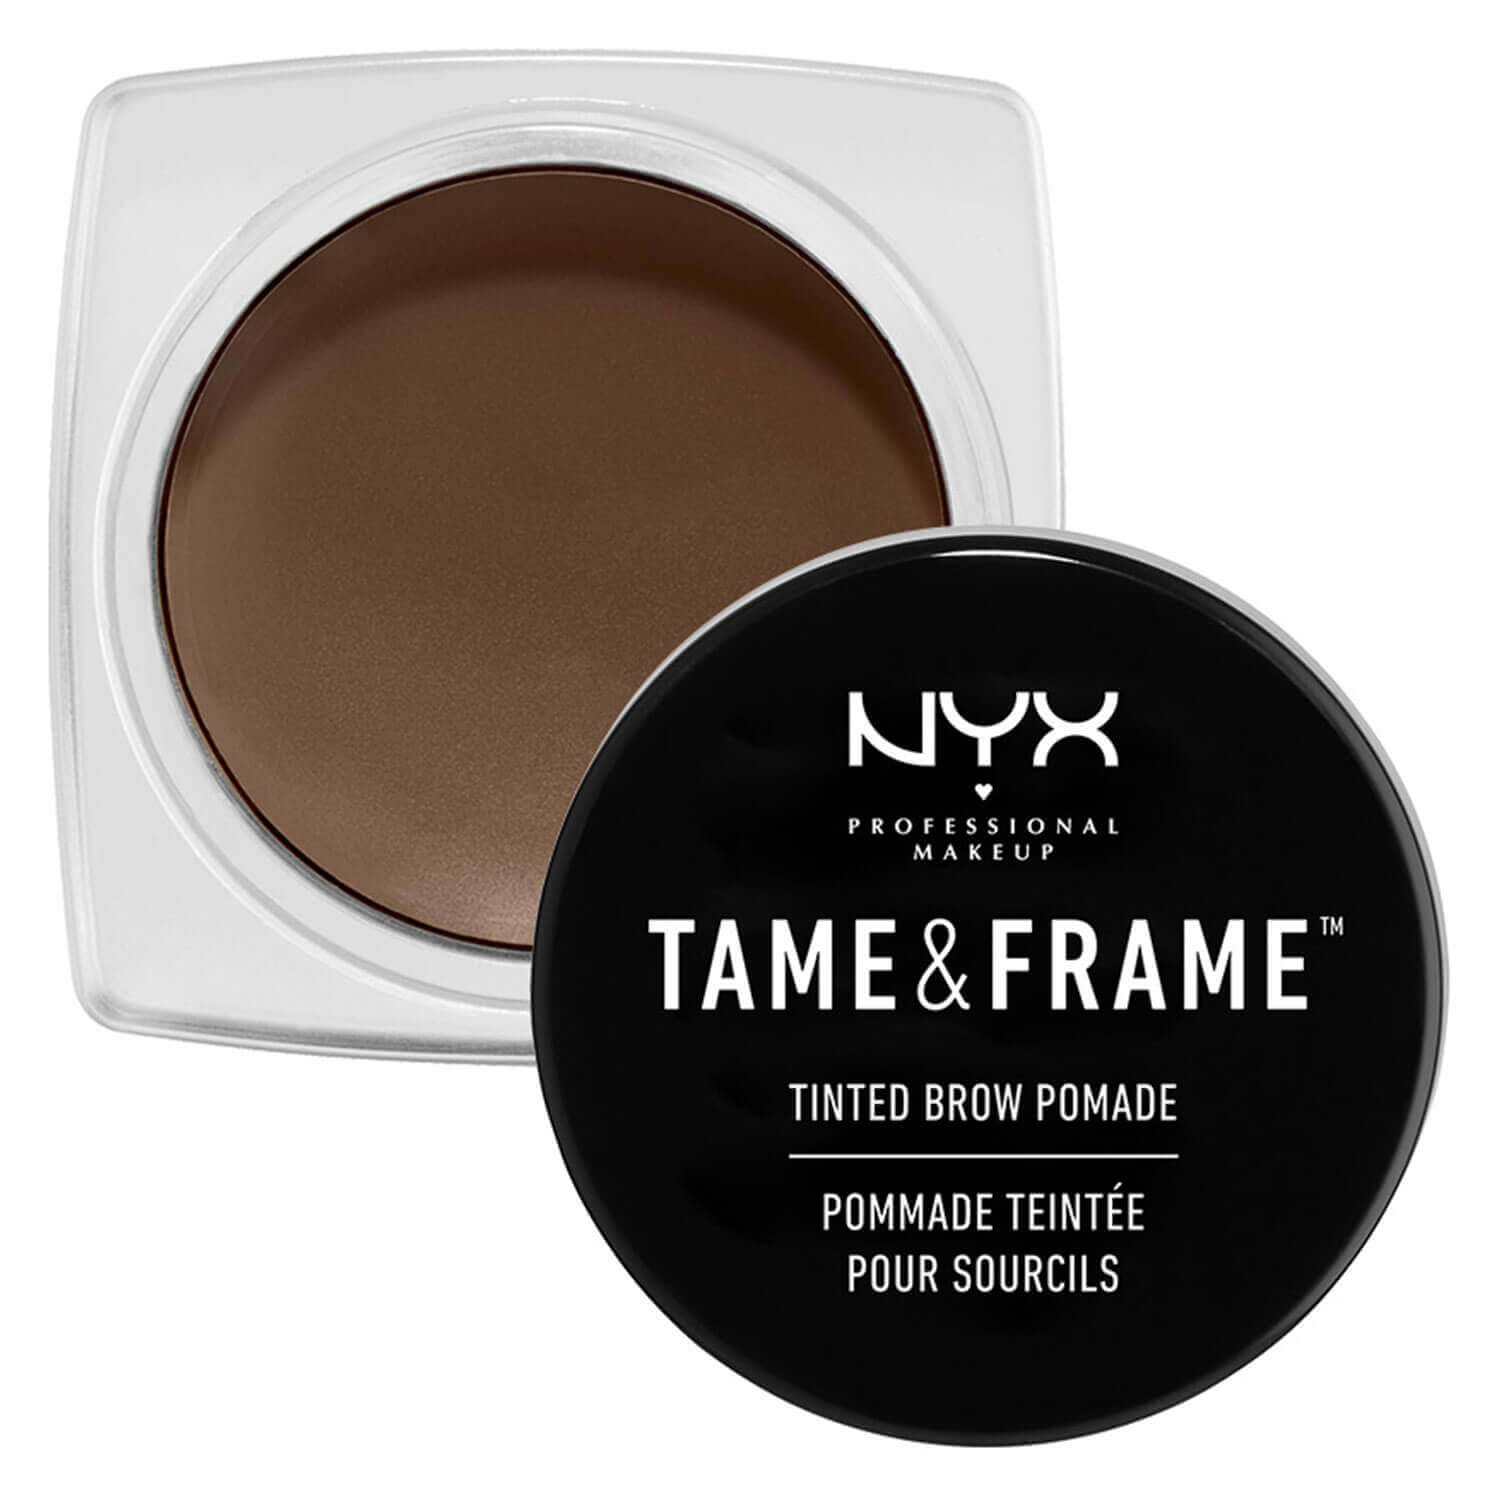 Tame & Frame - Tinted Brow Pomade Chocolate